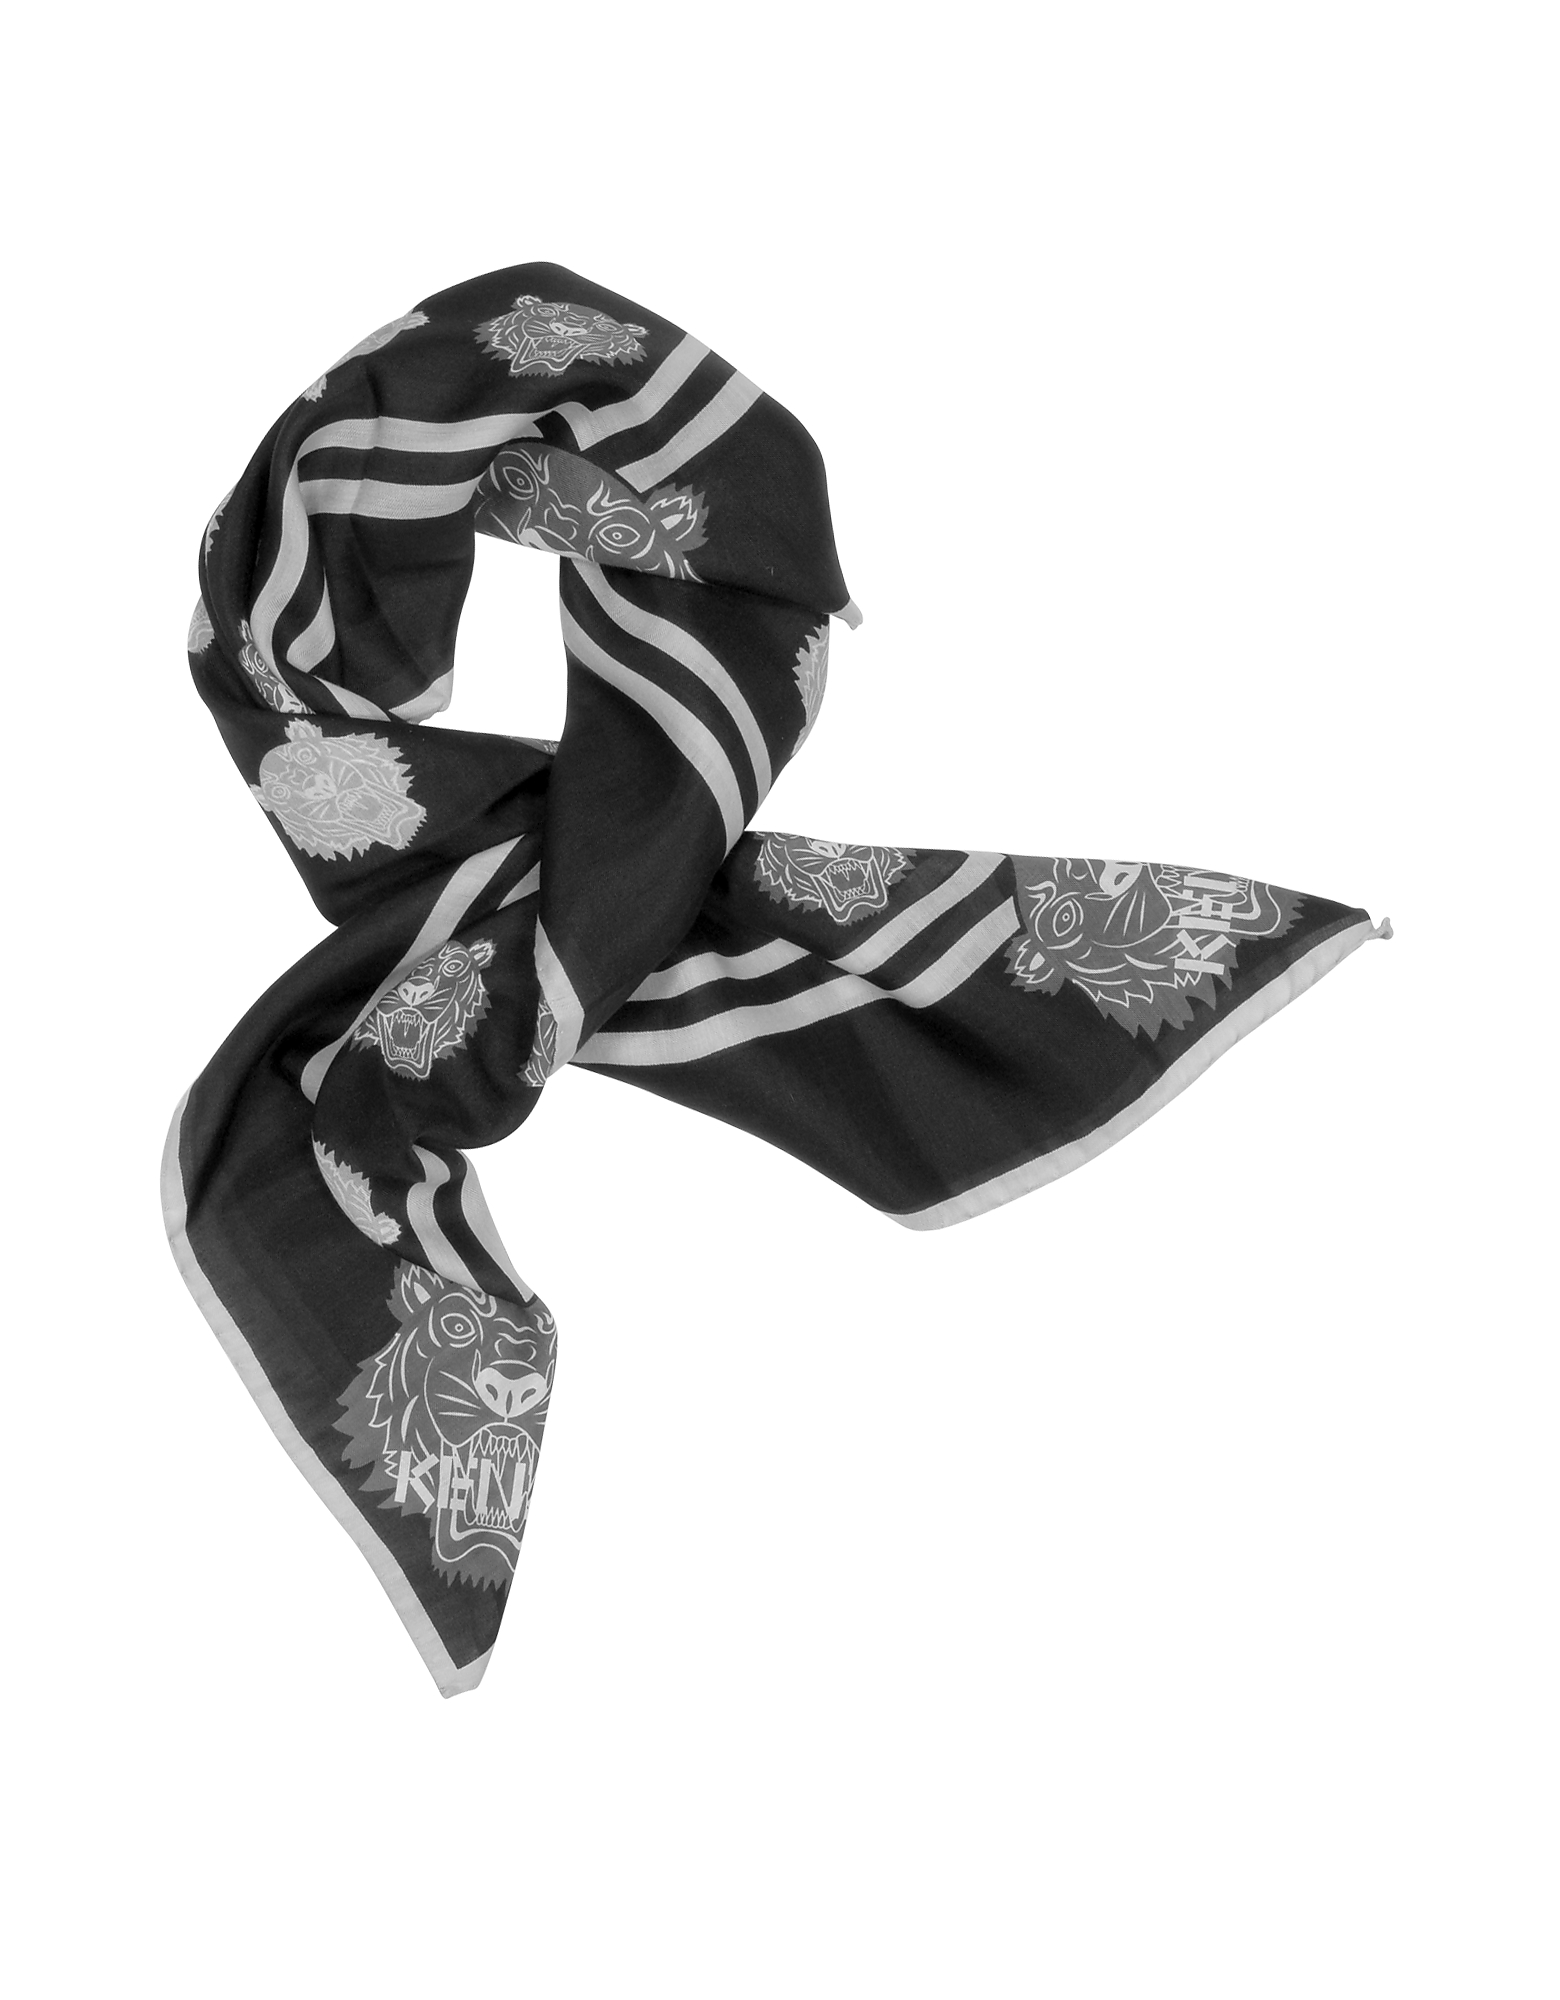 Kenzo Bandanas, Cotton and Silk Printed Tiger Bandana